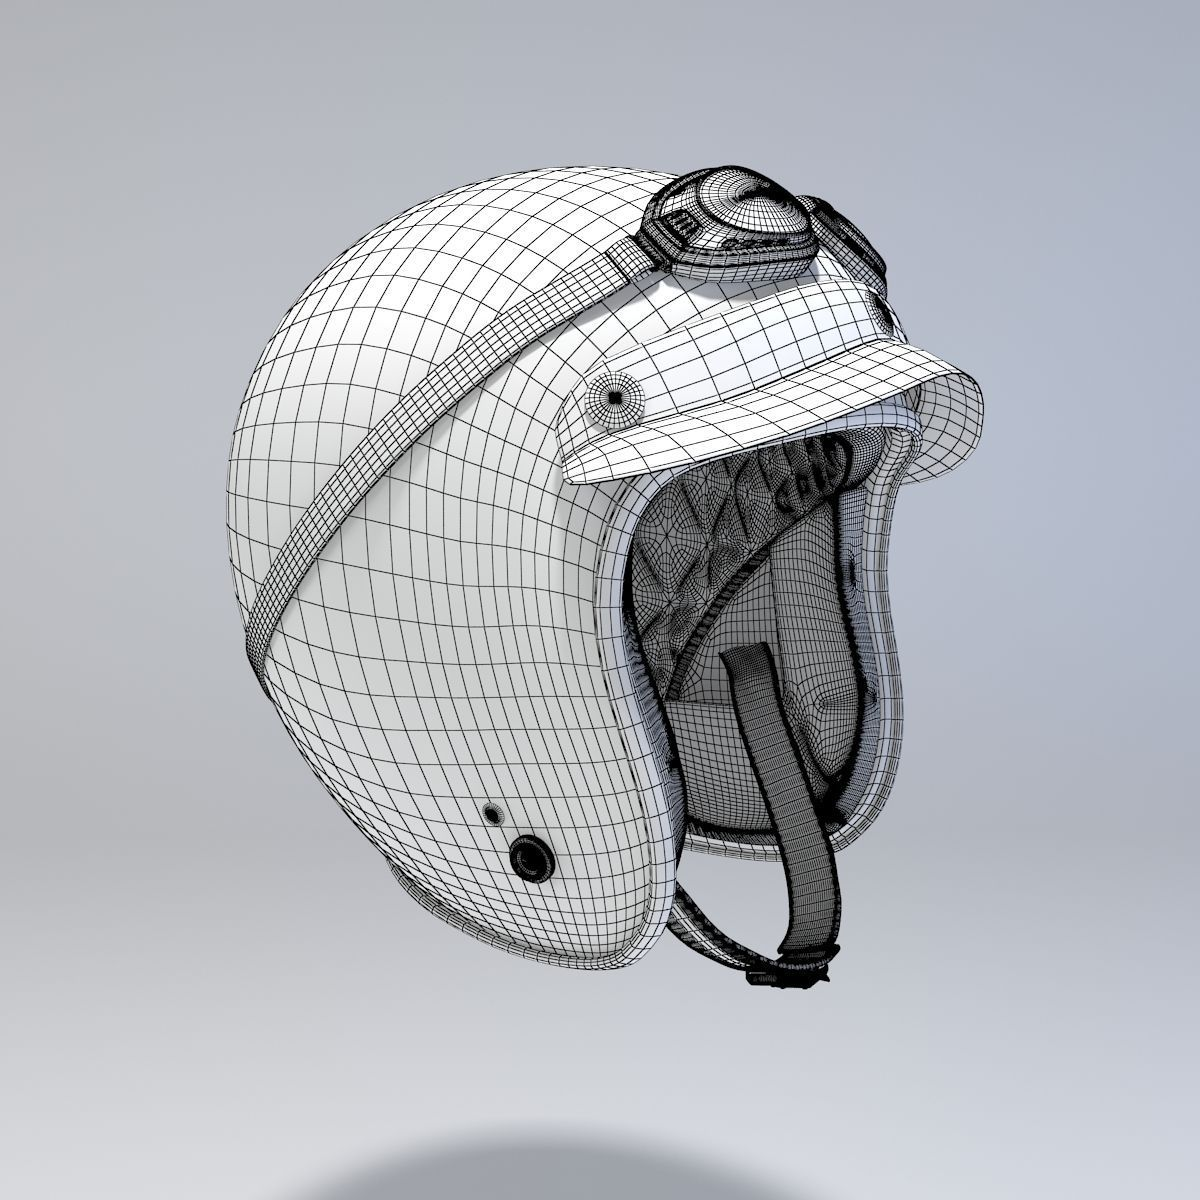 Bike Helmet Drawing at GetDrawings com | Free for personal use Bike